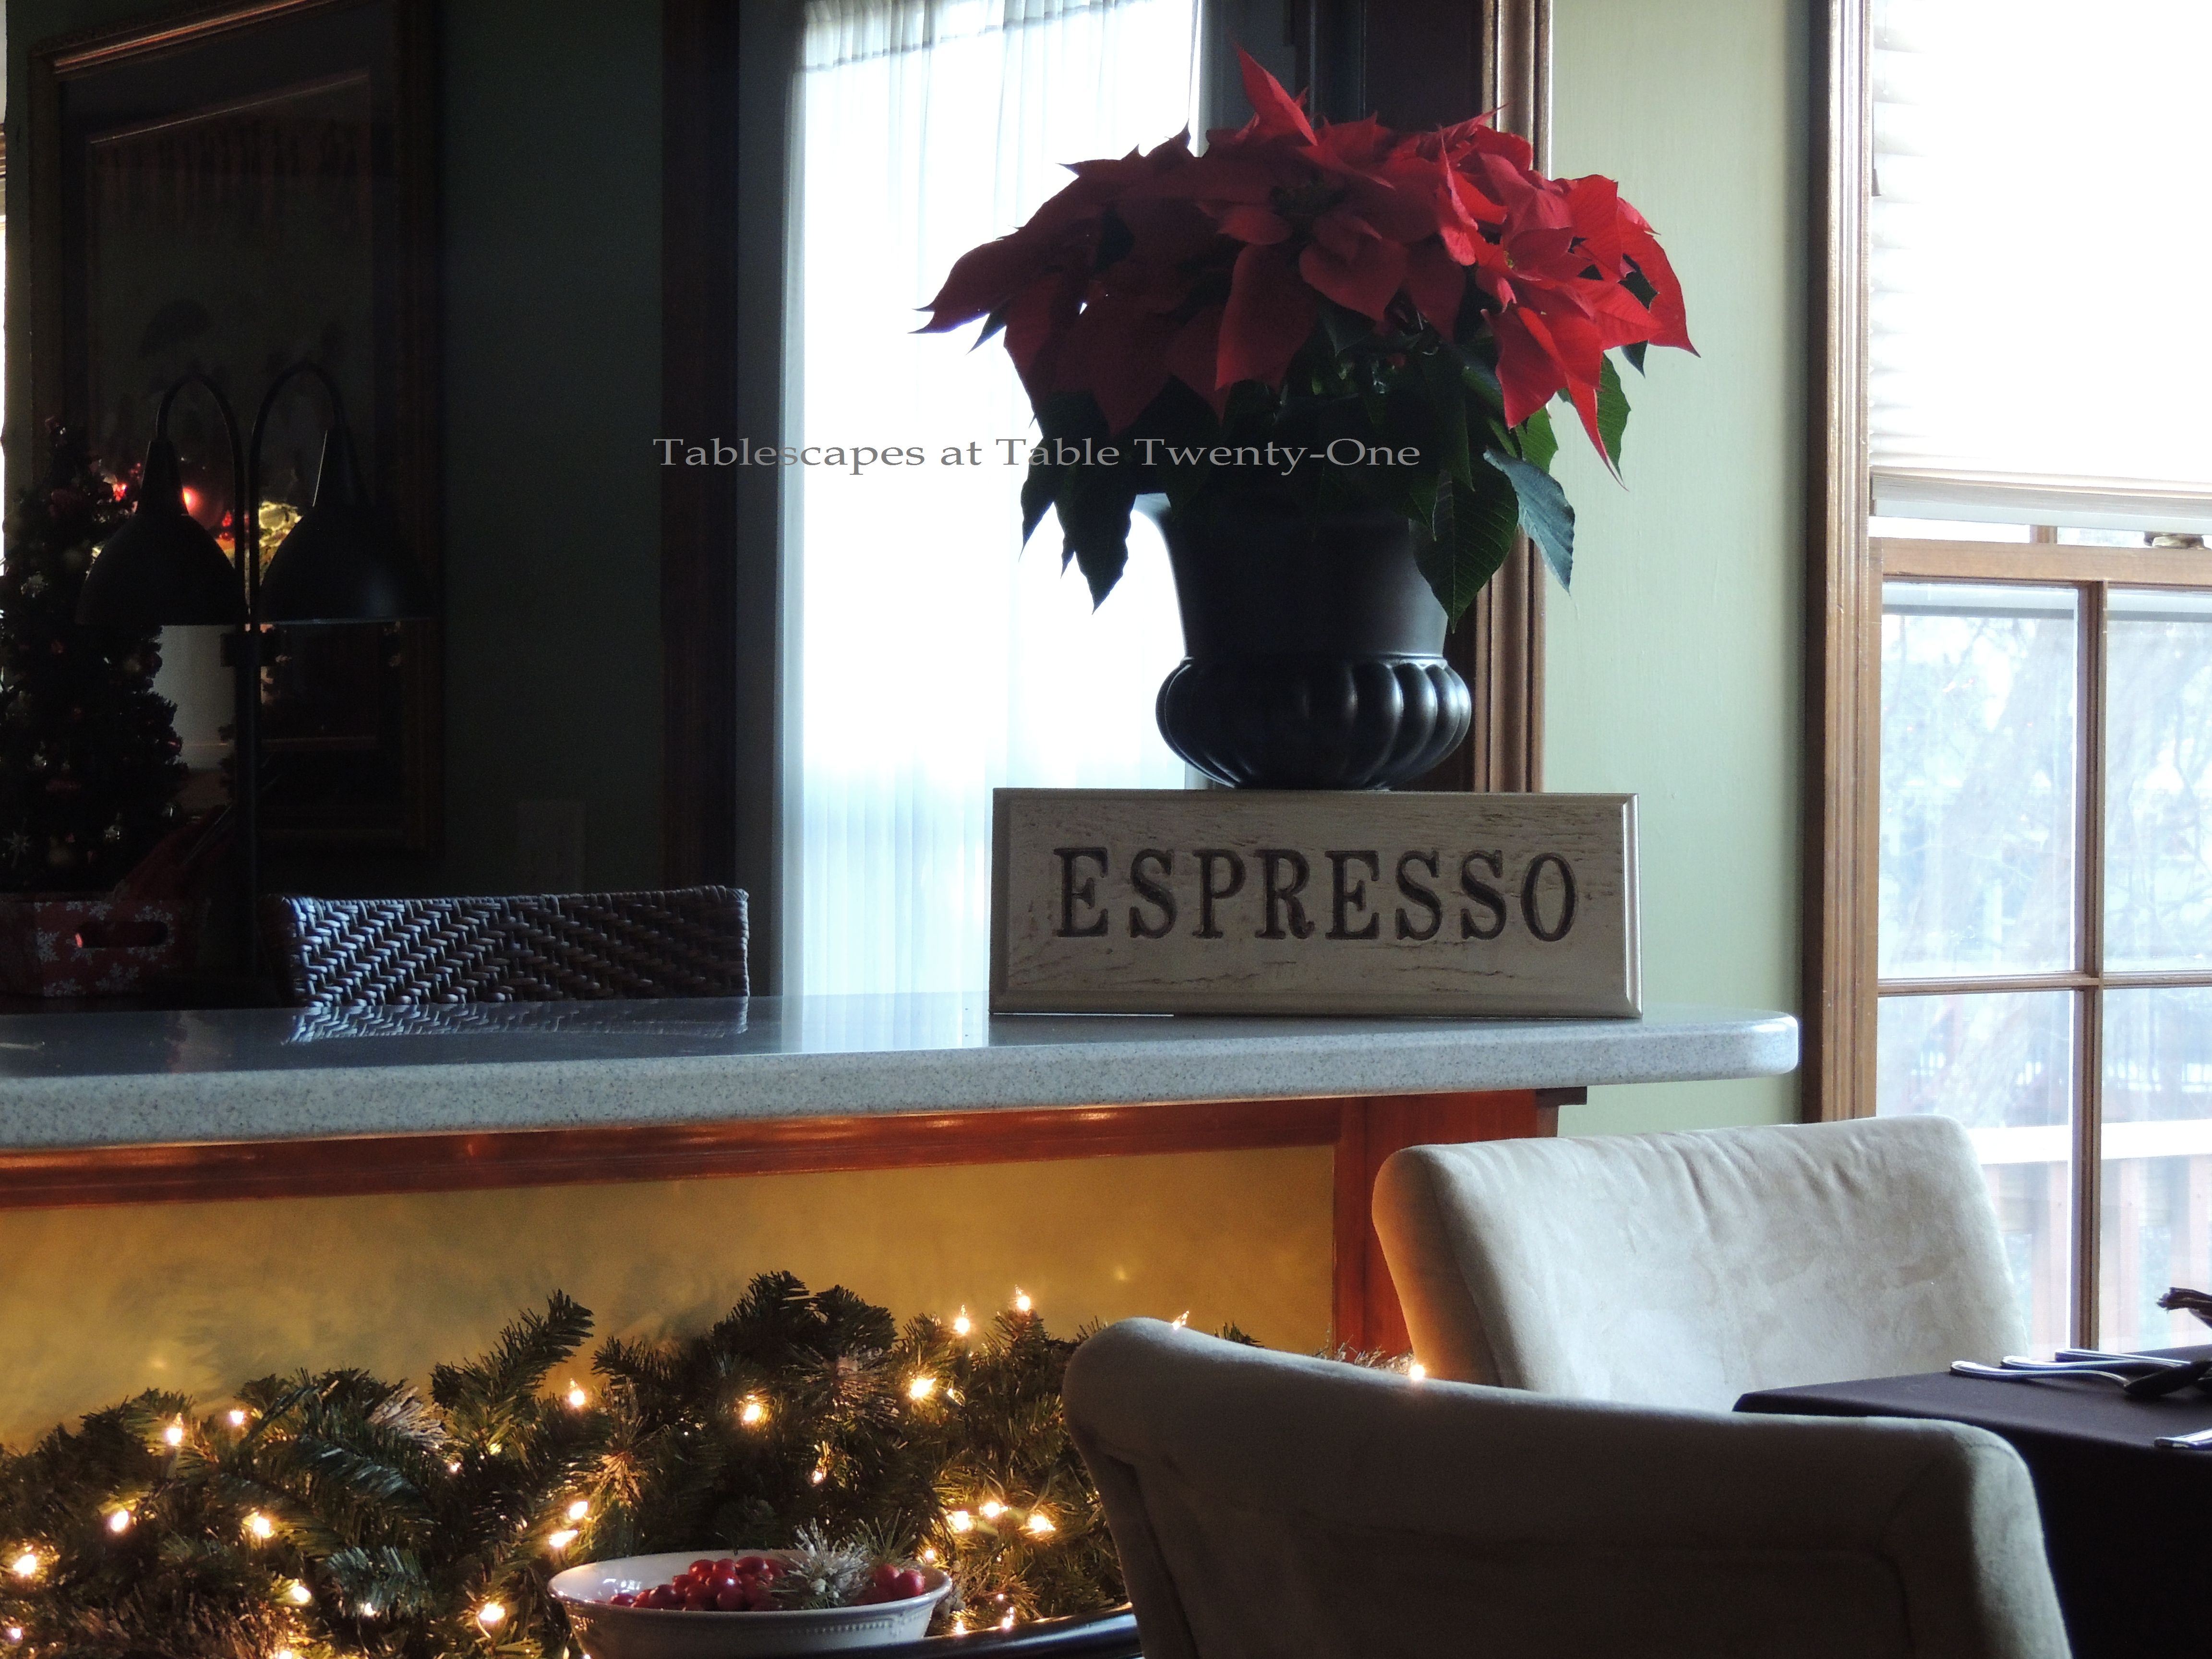 Tablescapes at Table Twenty-One, Christmas Coffee: Poinsettia on breakfast bar